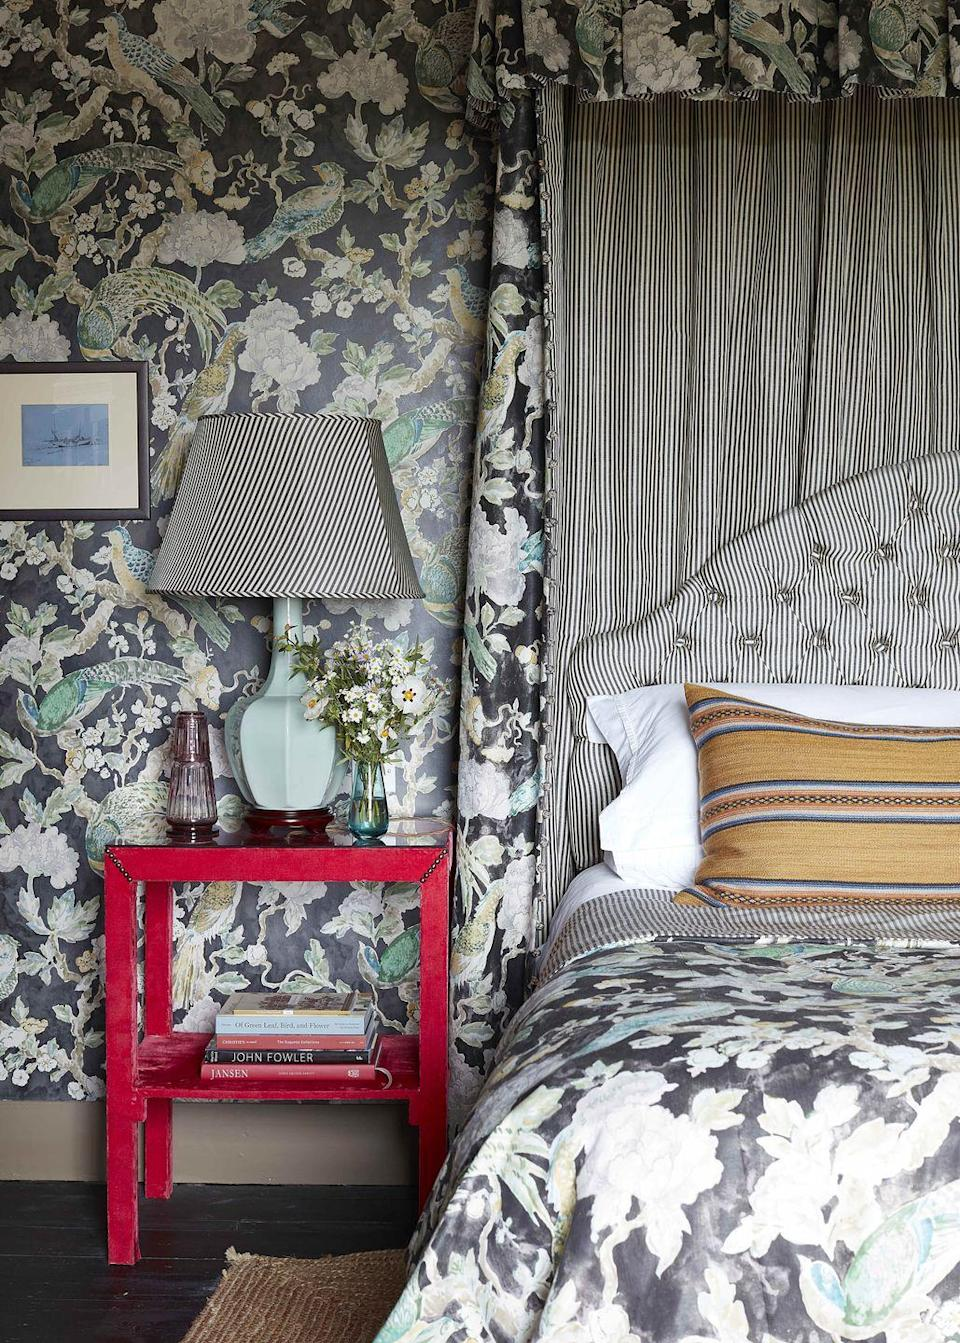 """<p>In the primary bedroom of <a href=""""https://www.veranda.com/decorating-ideas/house-tours/a33487562/richard-smith-english-manor-house-and-garden/"""" rel=""""nofollow noopener"""" target=""""_blank"""" data-ylk=""""slk:textile designer Richard Smith's English manor home"""" class=""""link rapid-noclick-resp"""">textile designer Richard Smith's English manor home</a>, the wallpaper was inspired by a Japanese screen, and the charcoal stripe is a handwoven linen silk fabric. (Both are <a href=""""https://www.madeaux.com/"""" rel=""""nofollow noopener"""" target=""""_blank"""" data-ylk=""""slk:Madeaux"""" class=""""link rapid-noclick-resp"""">Madeaux</a>.)</p>"""